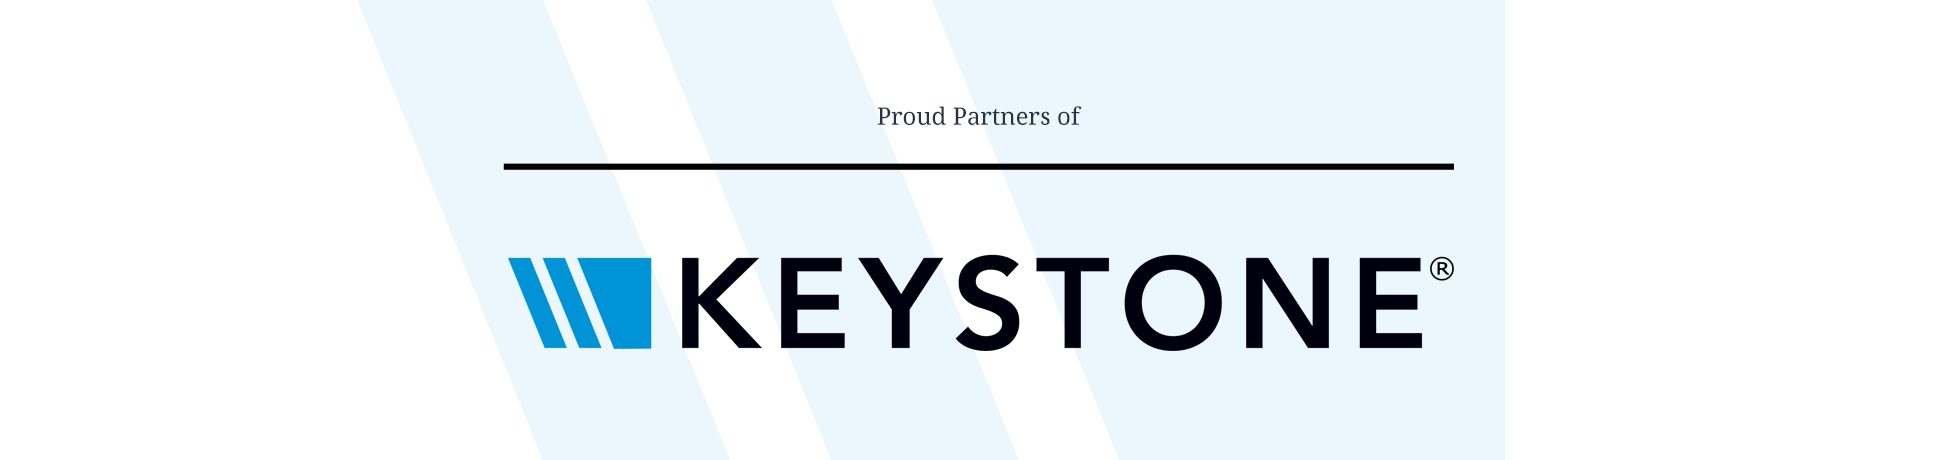 Partners with Keystone Insurers Group